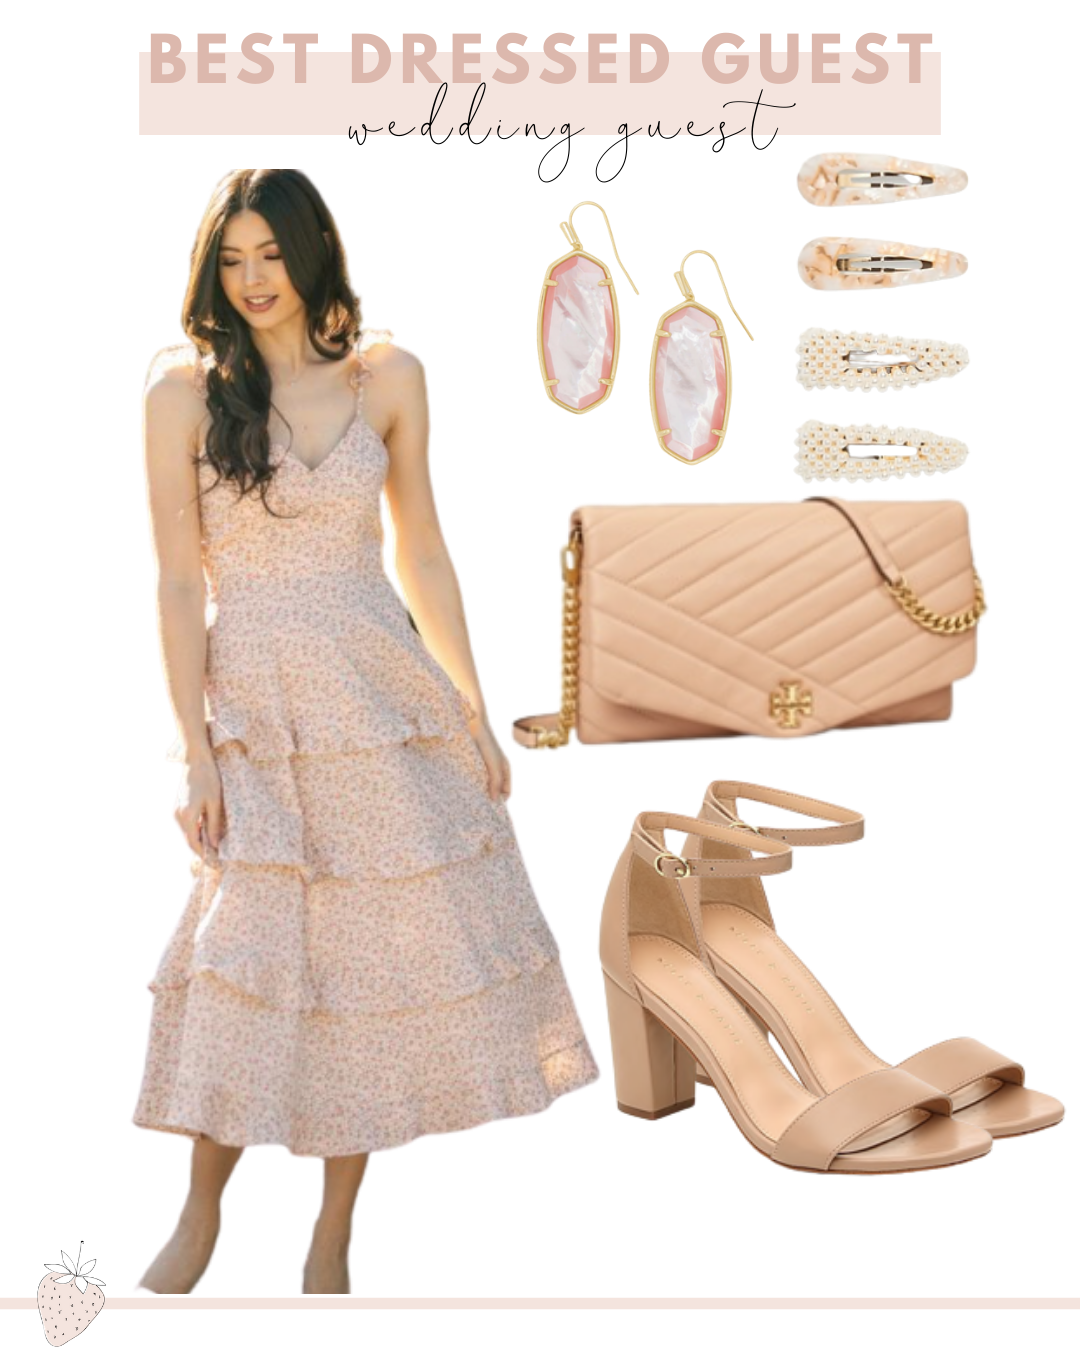 Best Dressed Guest Guide to Spring Events | spring wedding guest dress